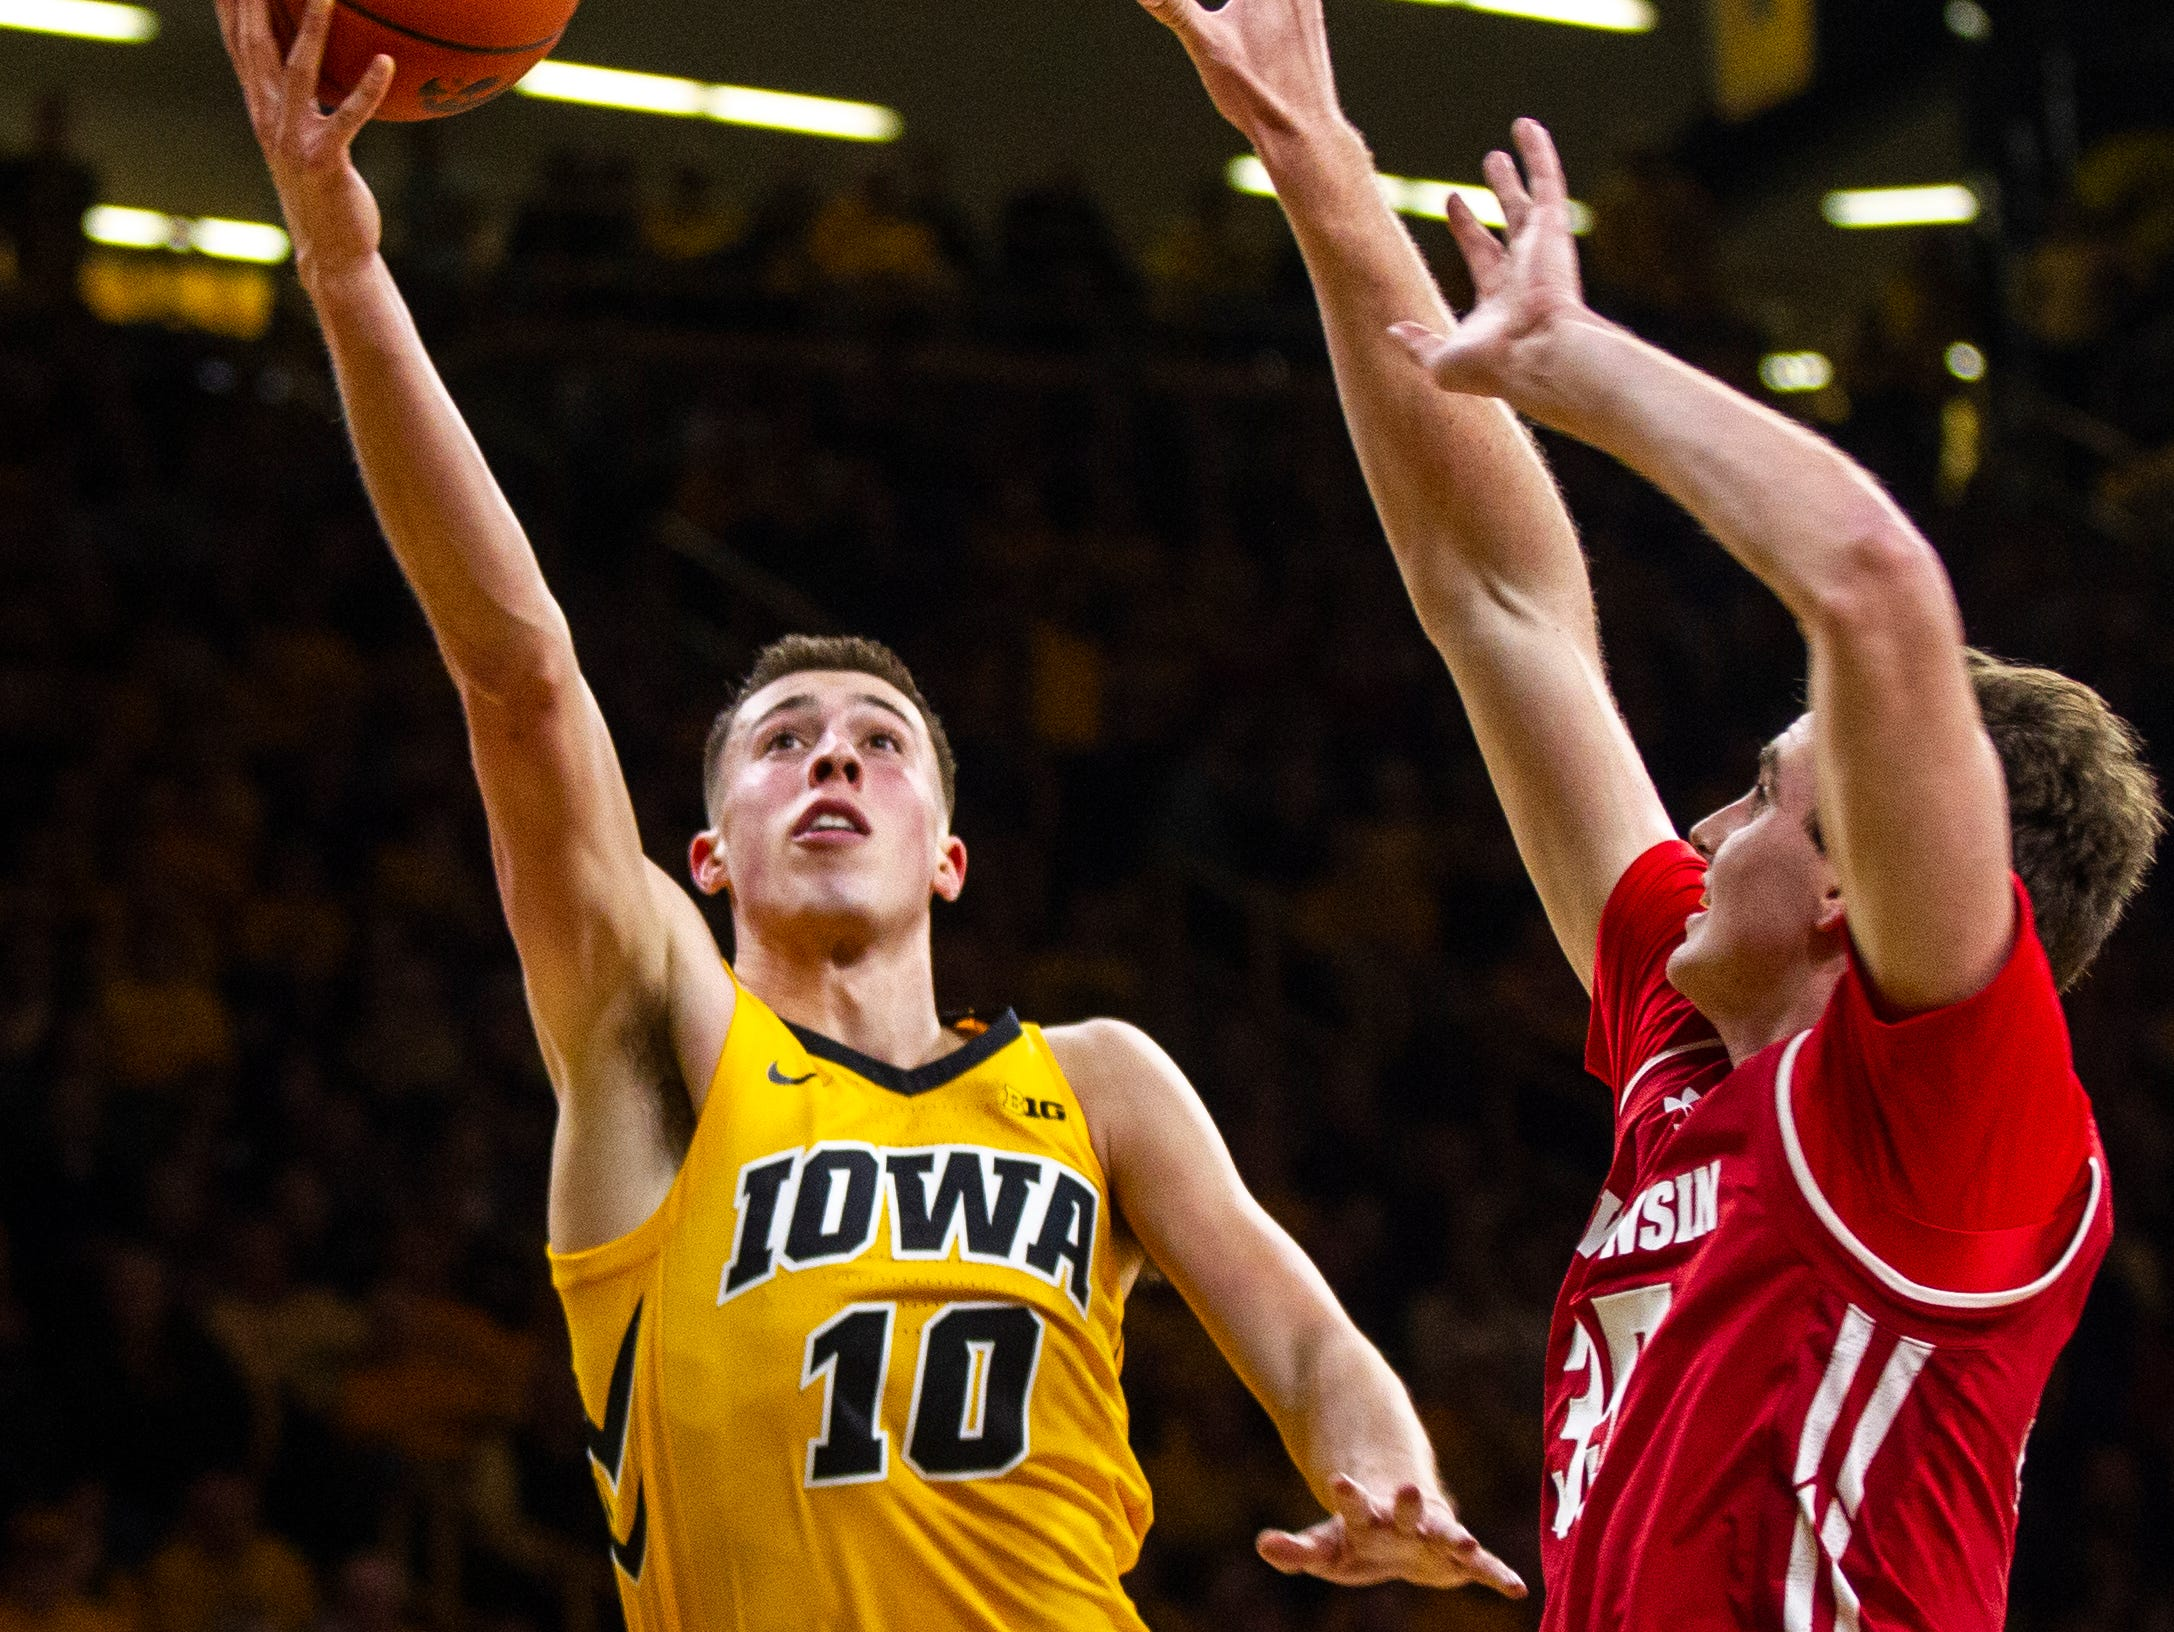 Iowa guard Joe Wieskamp (10) attempts a layup past Wisconsin's Nate Reuvers (35) during a NCAA Big Ten Conference men's basketball game on Friday, Nov. 30, 2018, at Carver-Hawkeye Arena in Iowa City.